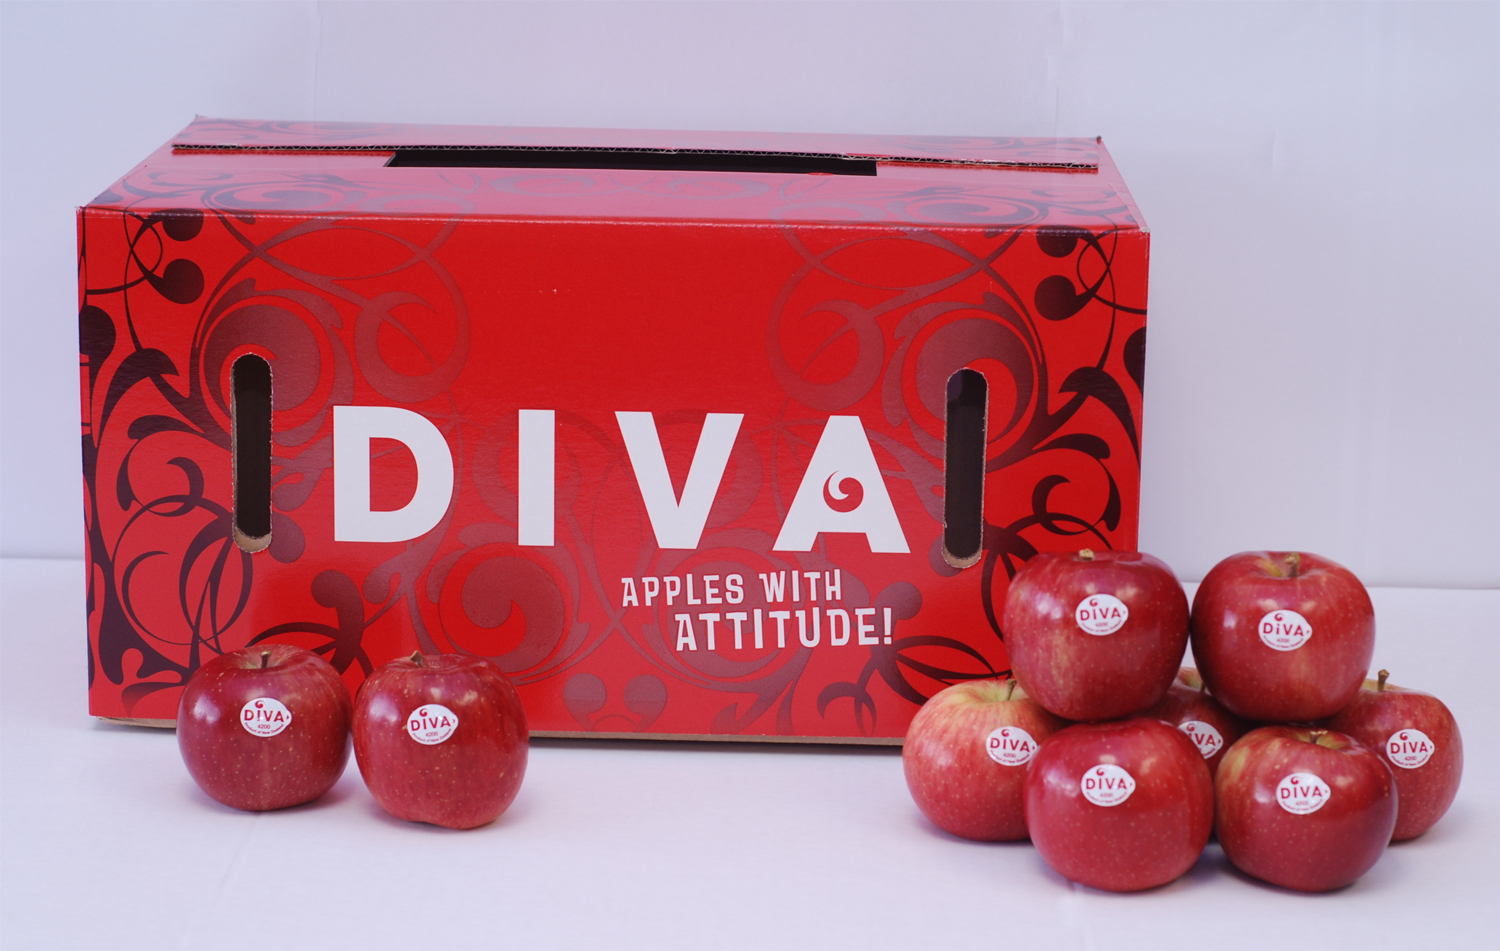 DIVA apples grown in New Zealand  .     Click here to download high resolution image.